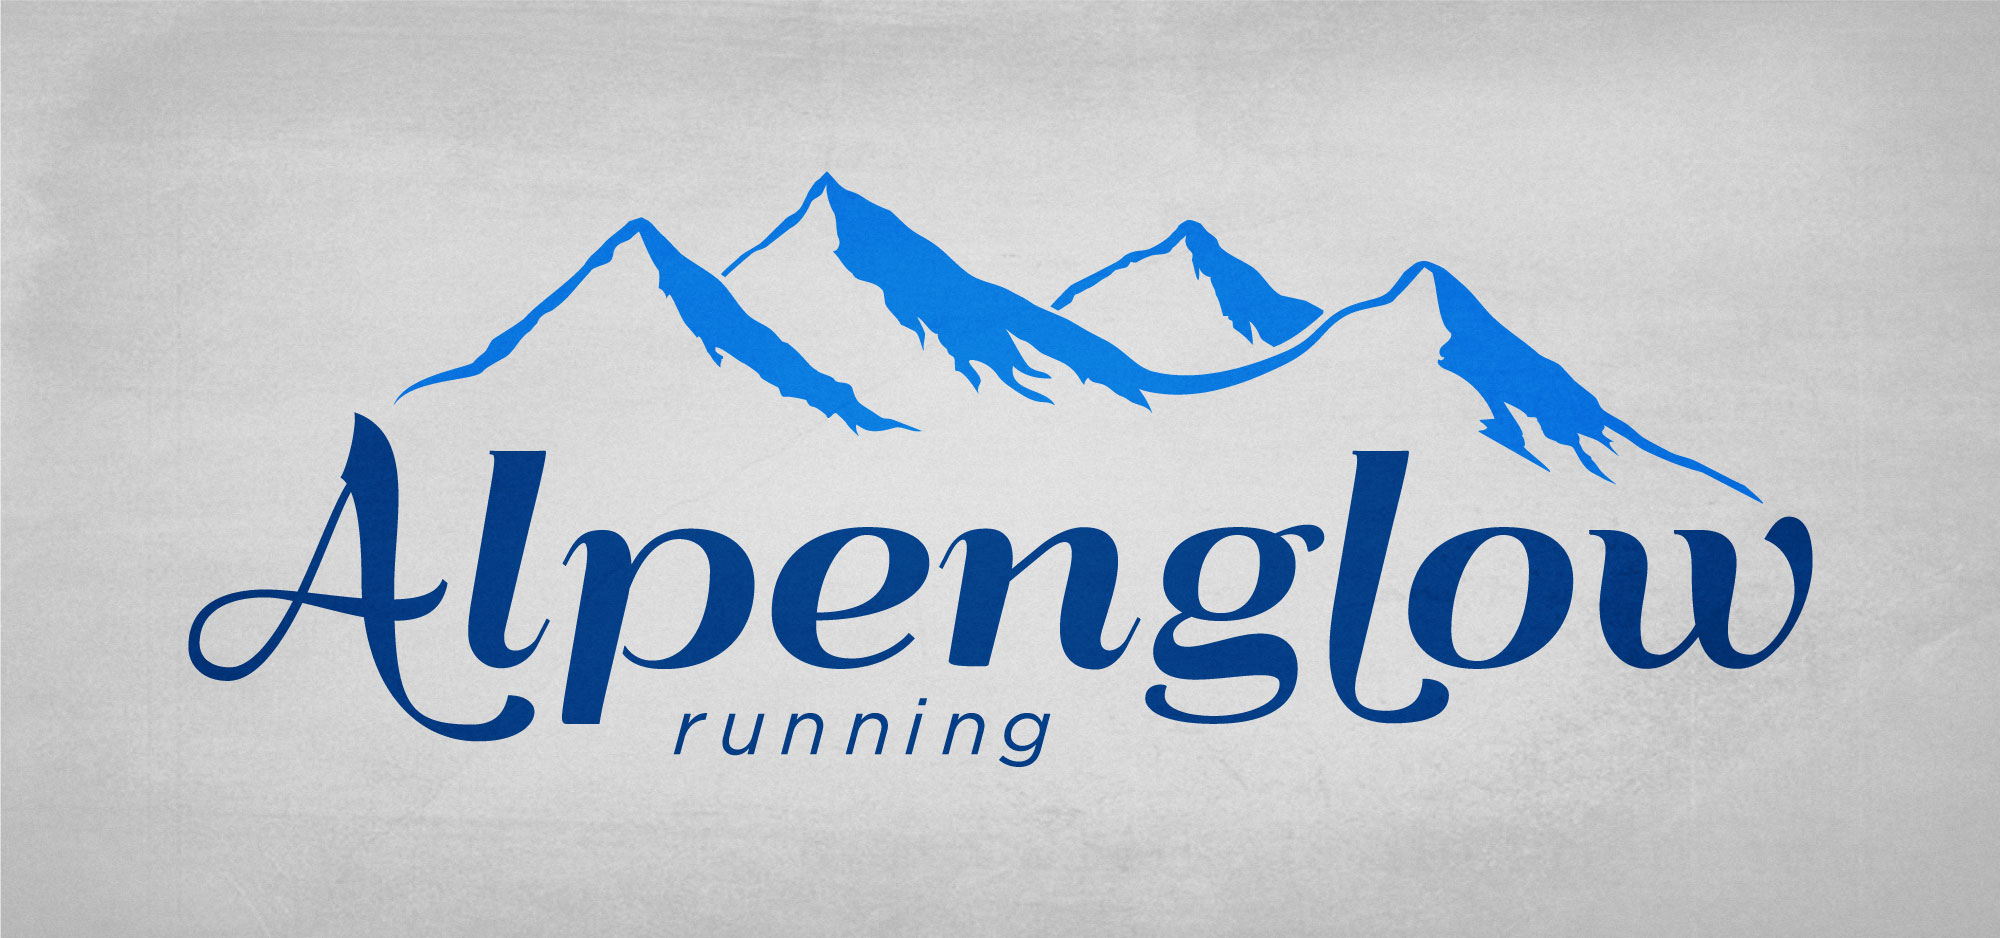 seattle running company logo